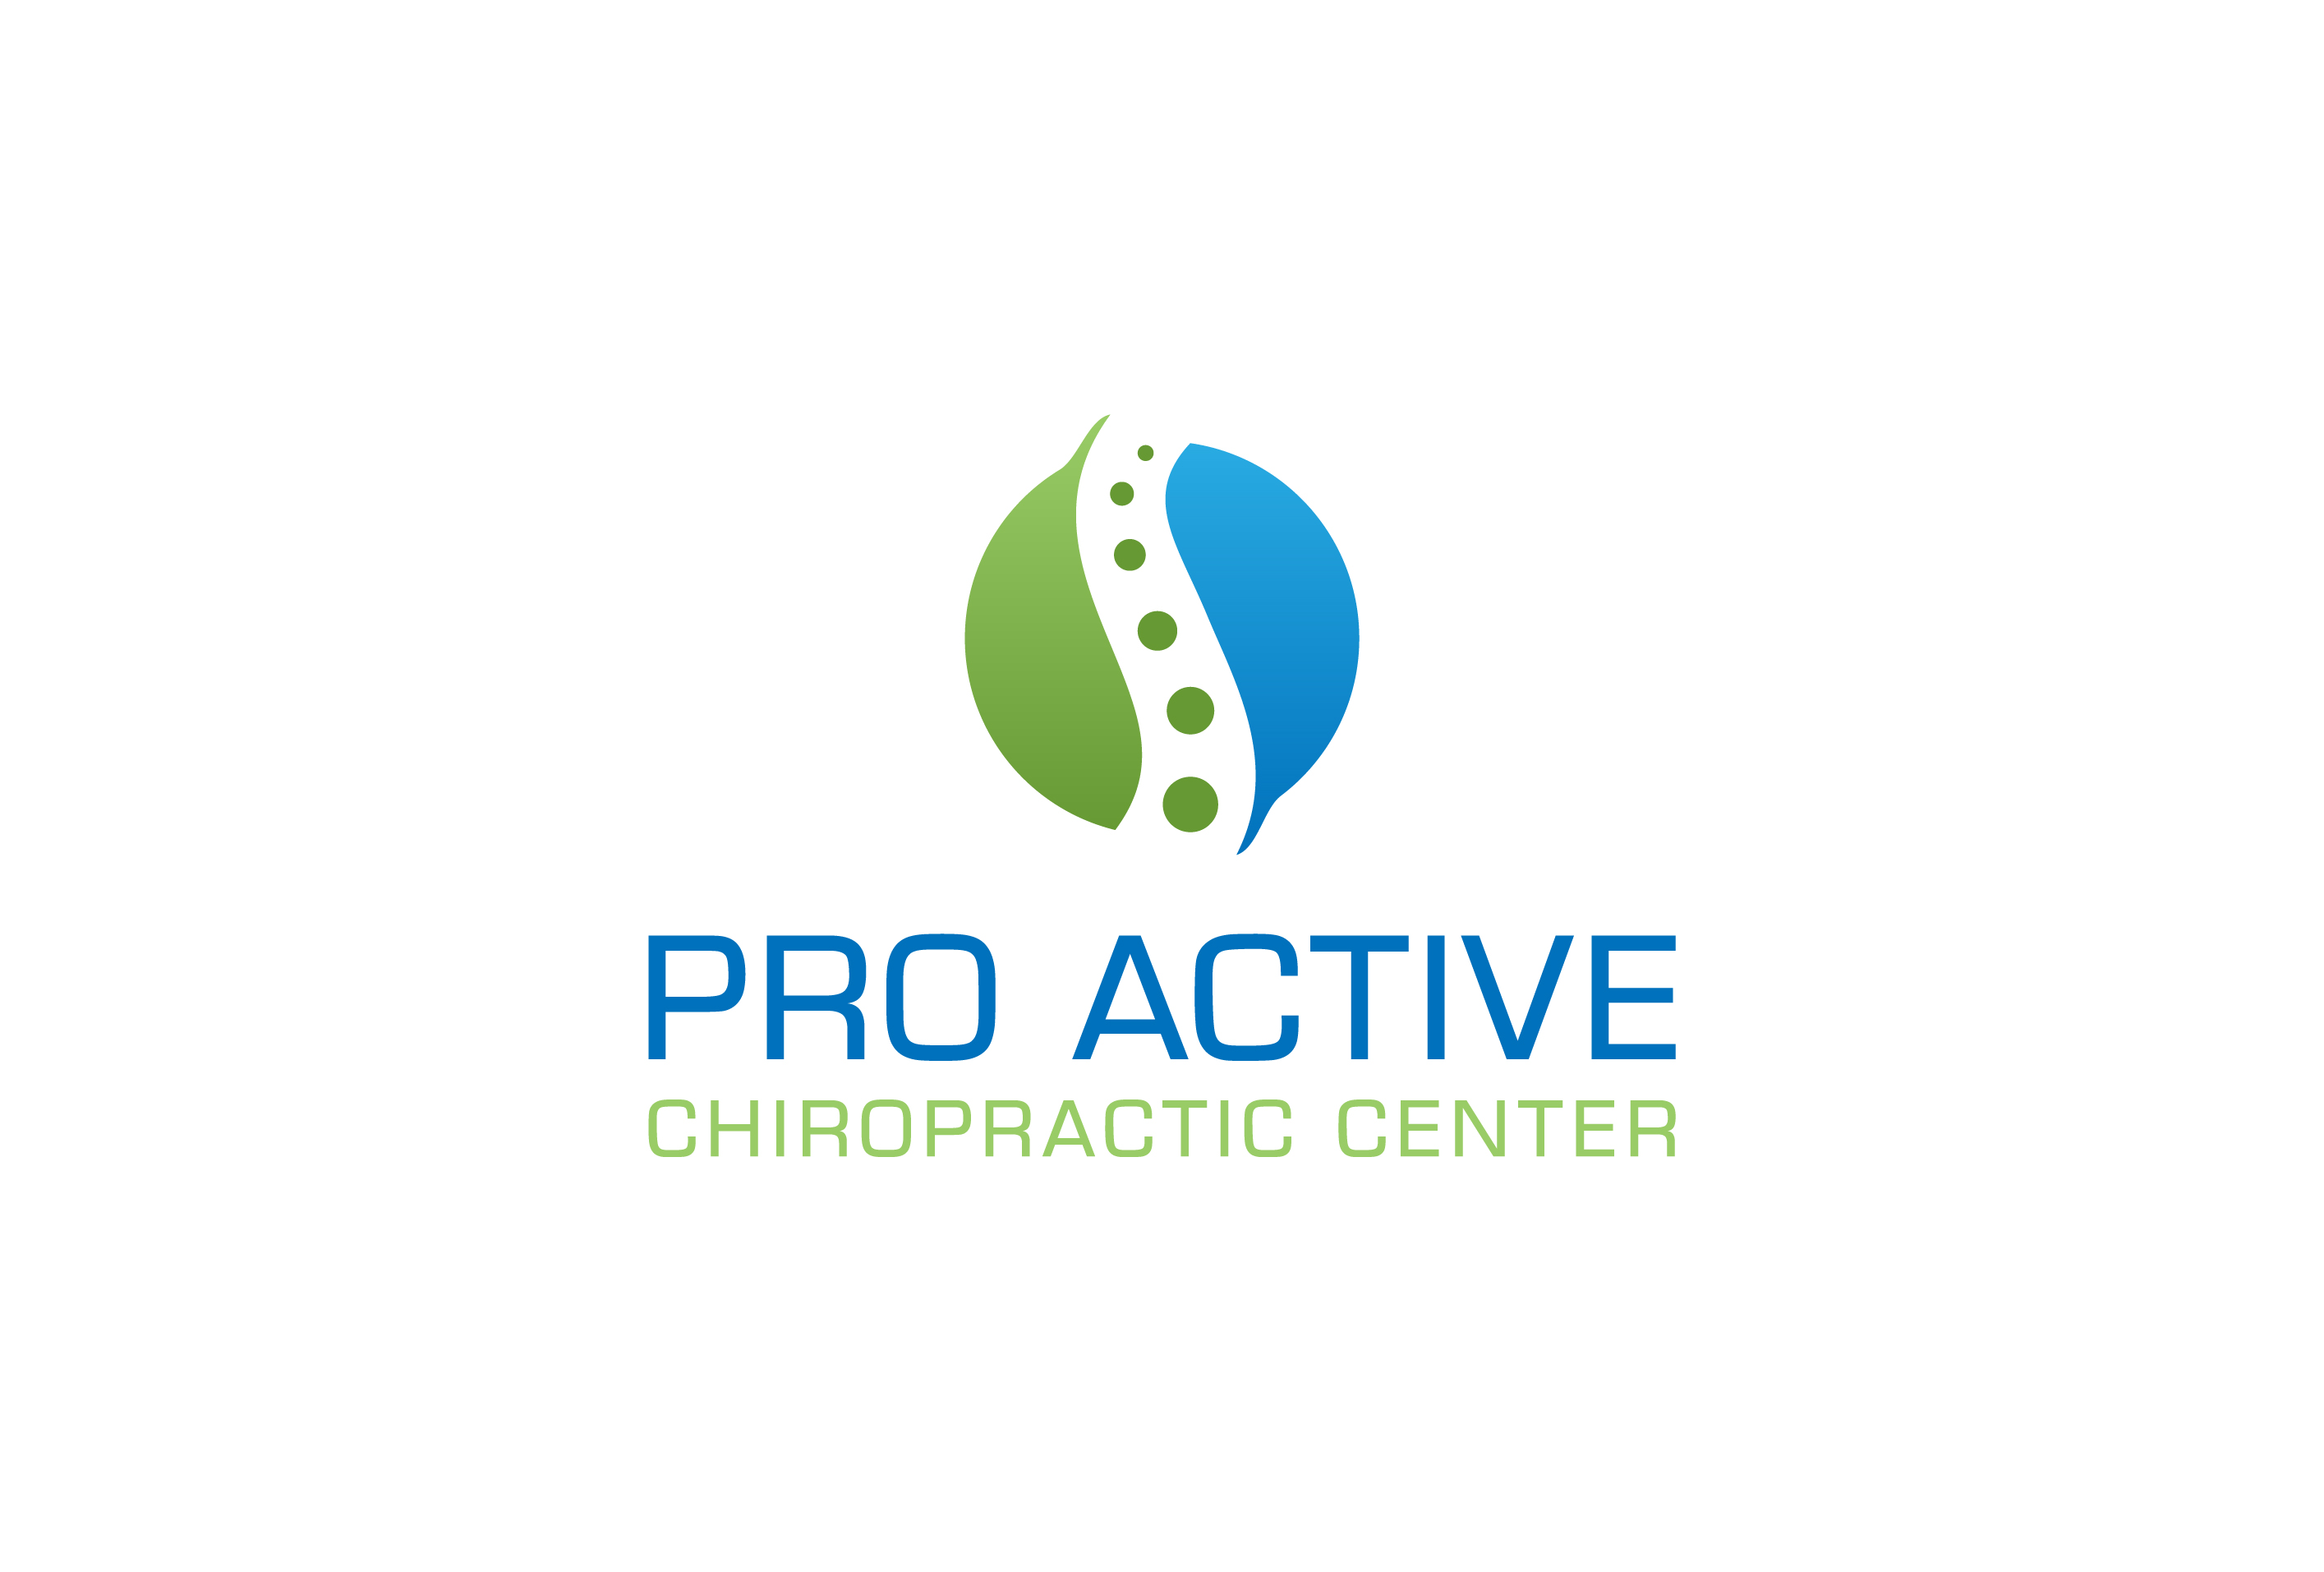 Text Neck Pain Relief Protocols Established By Experts At Pro Active Chiropractic Center